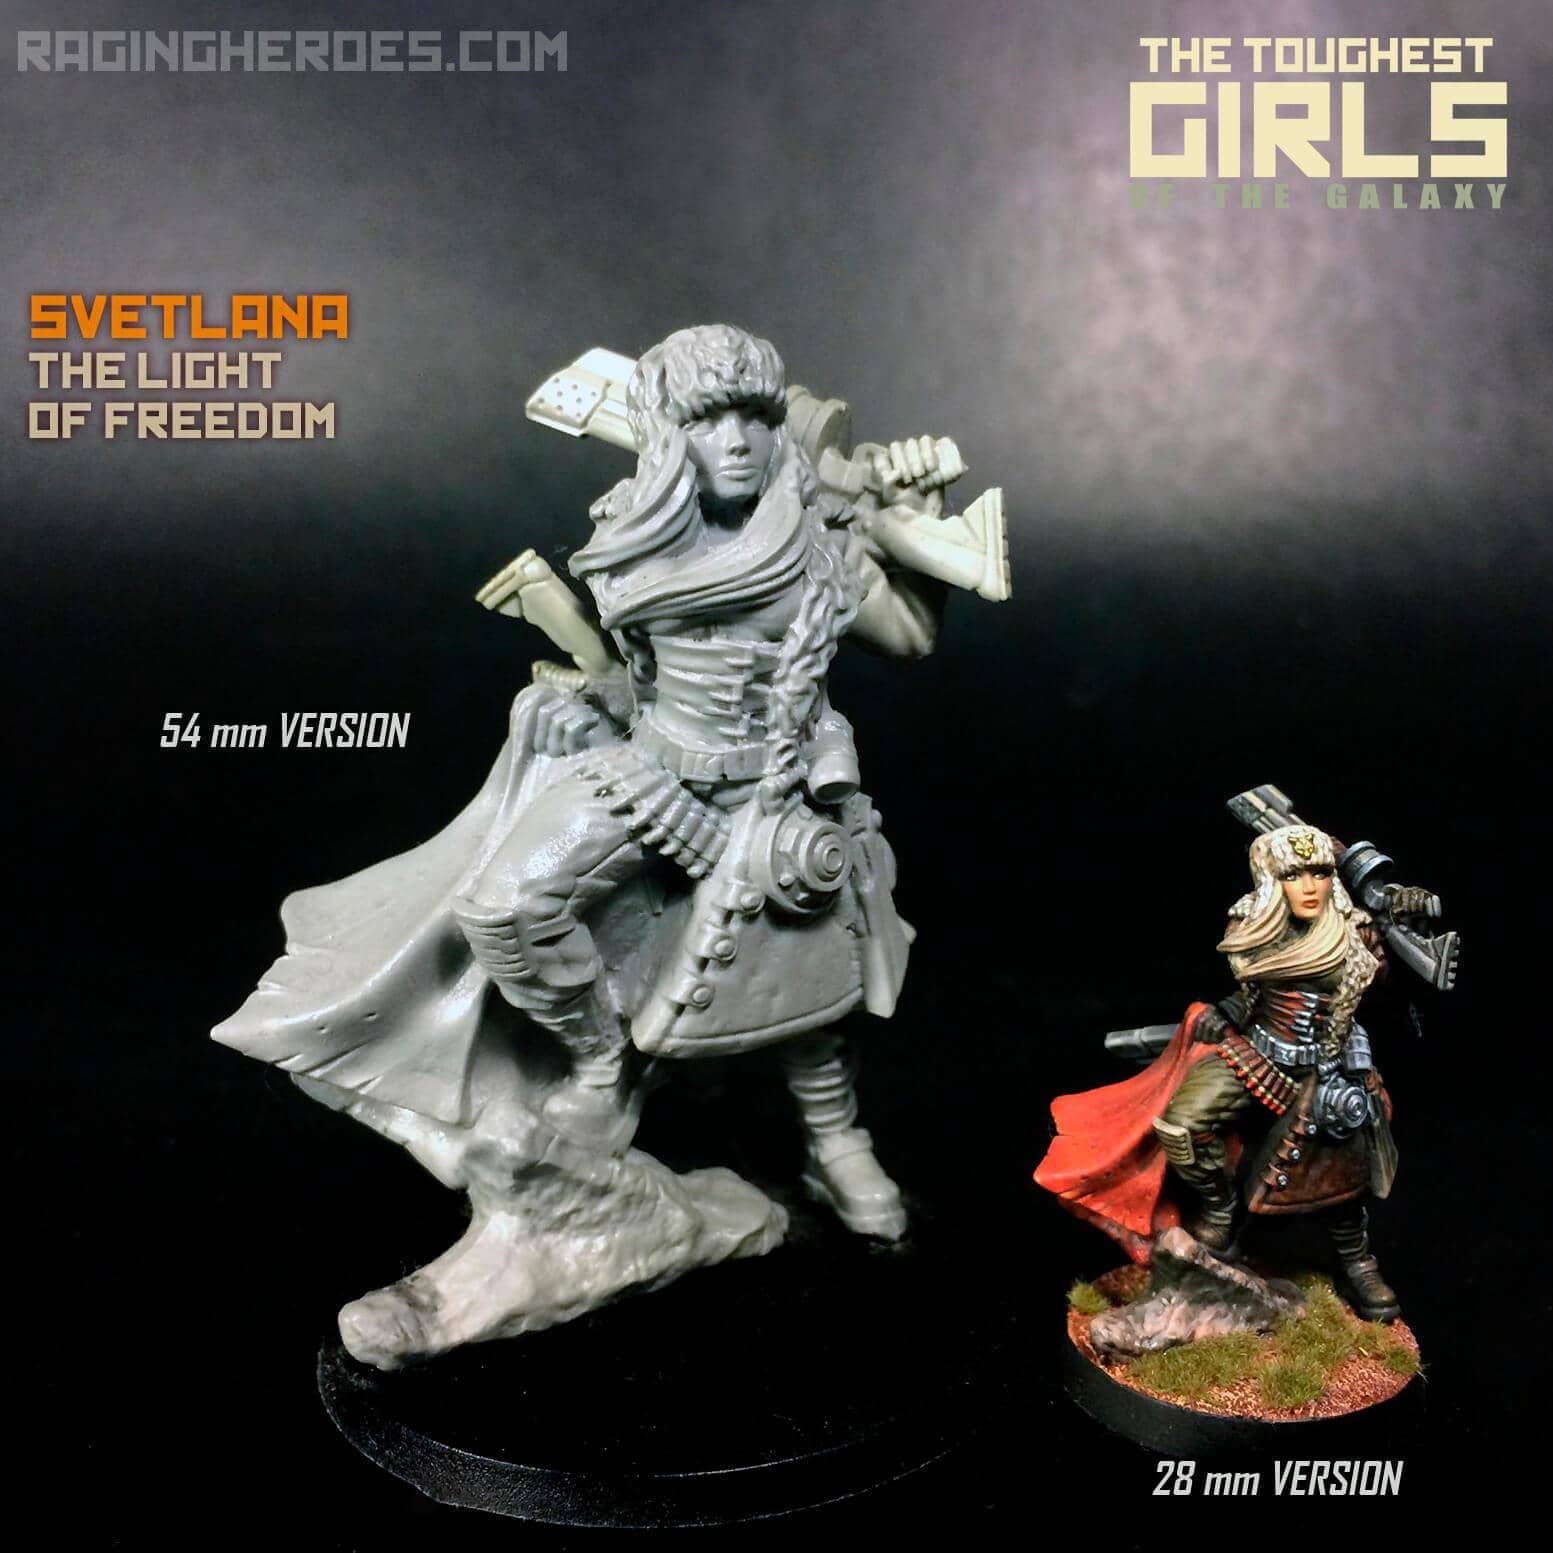 Svetlana, the Light of Freedom (KST) 54mm Heroic Scale - Raging Heroes